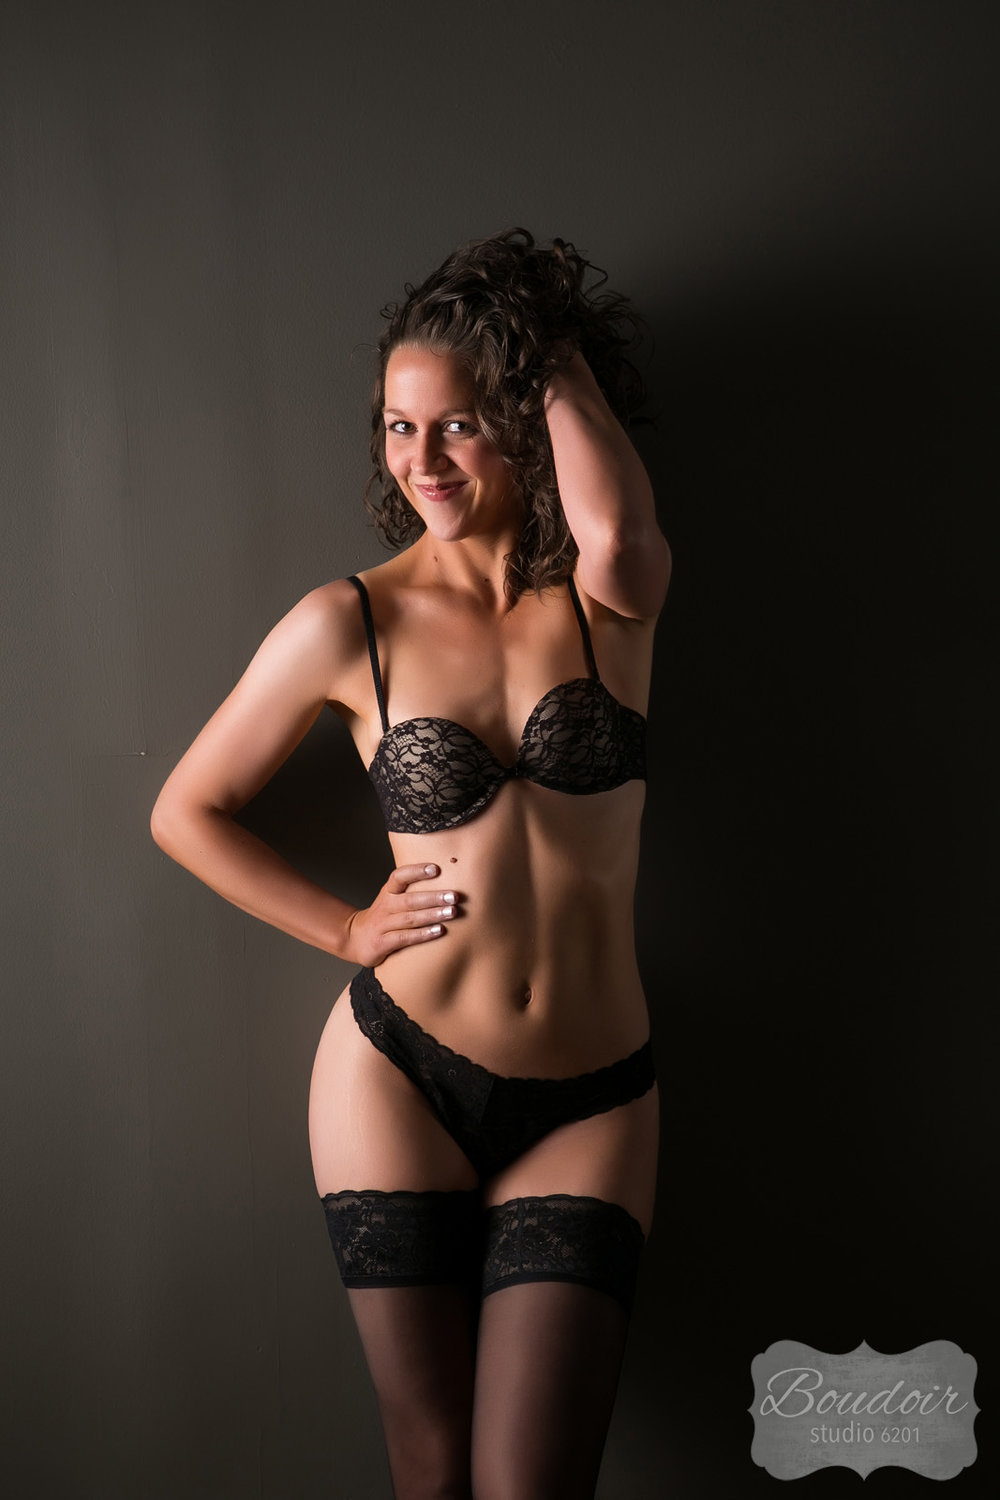 boudoir-studio-rochester-beautiful-gallery-056.jpg